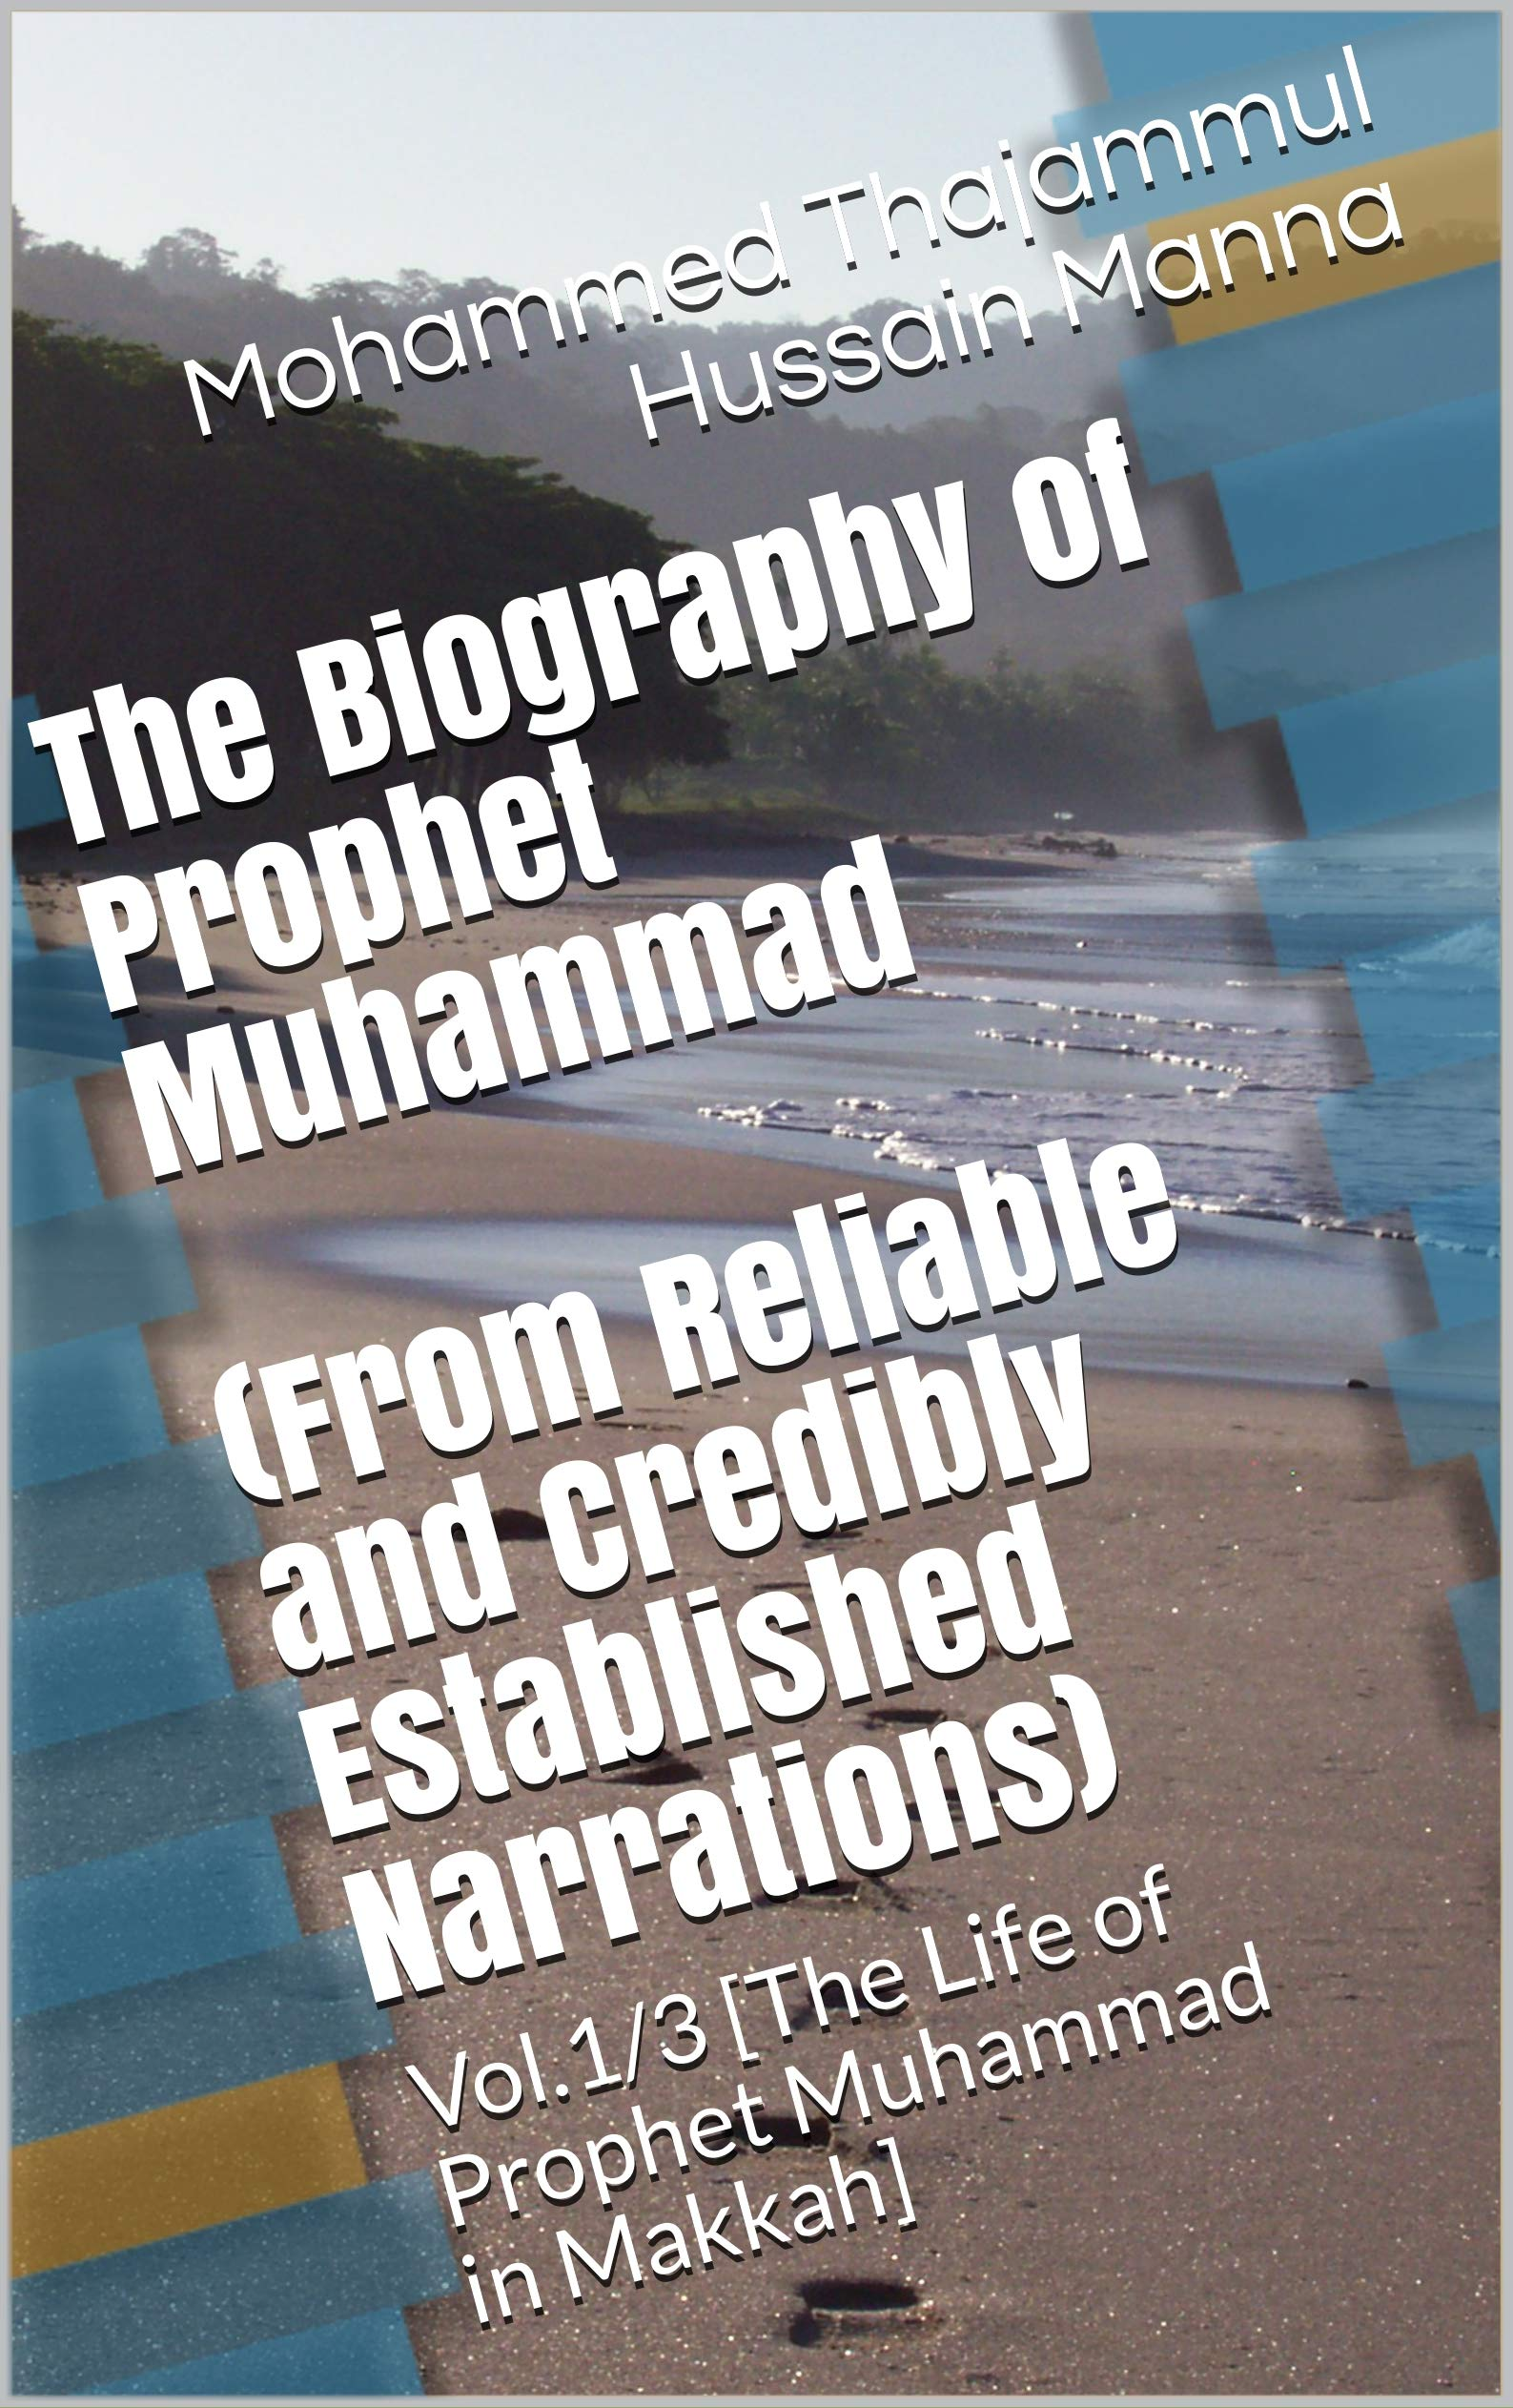 The Biography of Prophet Muhammad ﷺ (From Reliable and Credibly Established Narrations): Vol.1/3 [The Life of Prophet Muhammad ﷺ in Makkah] (Authentic Seerah Book 1)